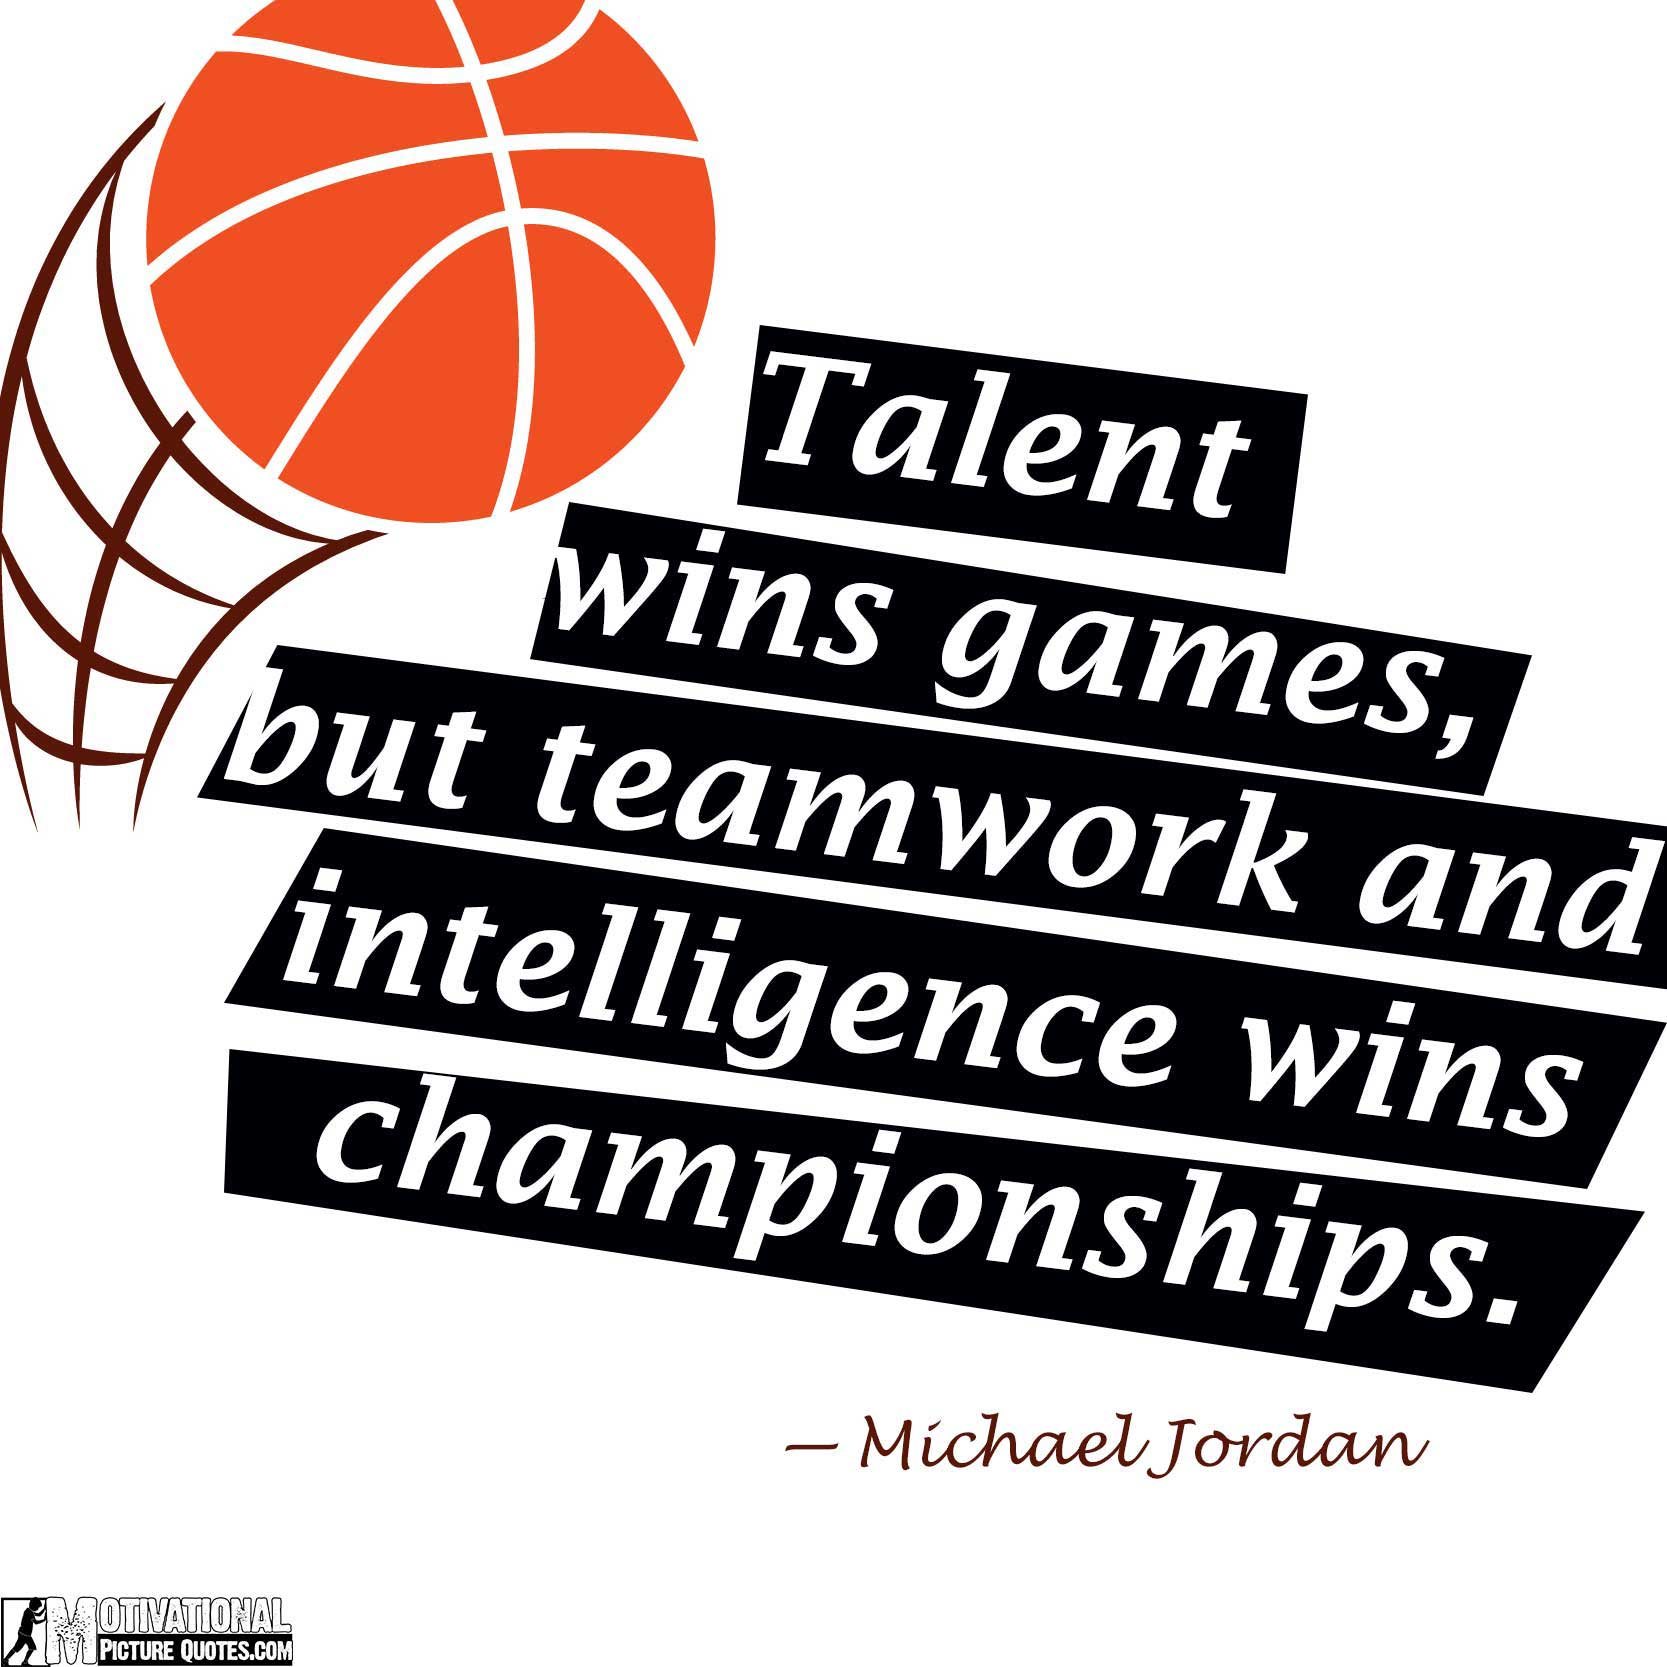 50 Inspirational Basketball Quotes With Pictures Insbright